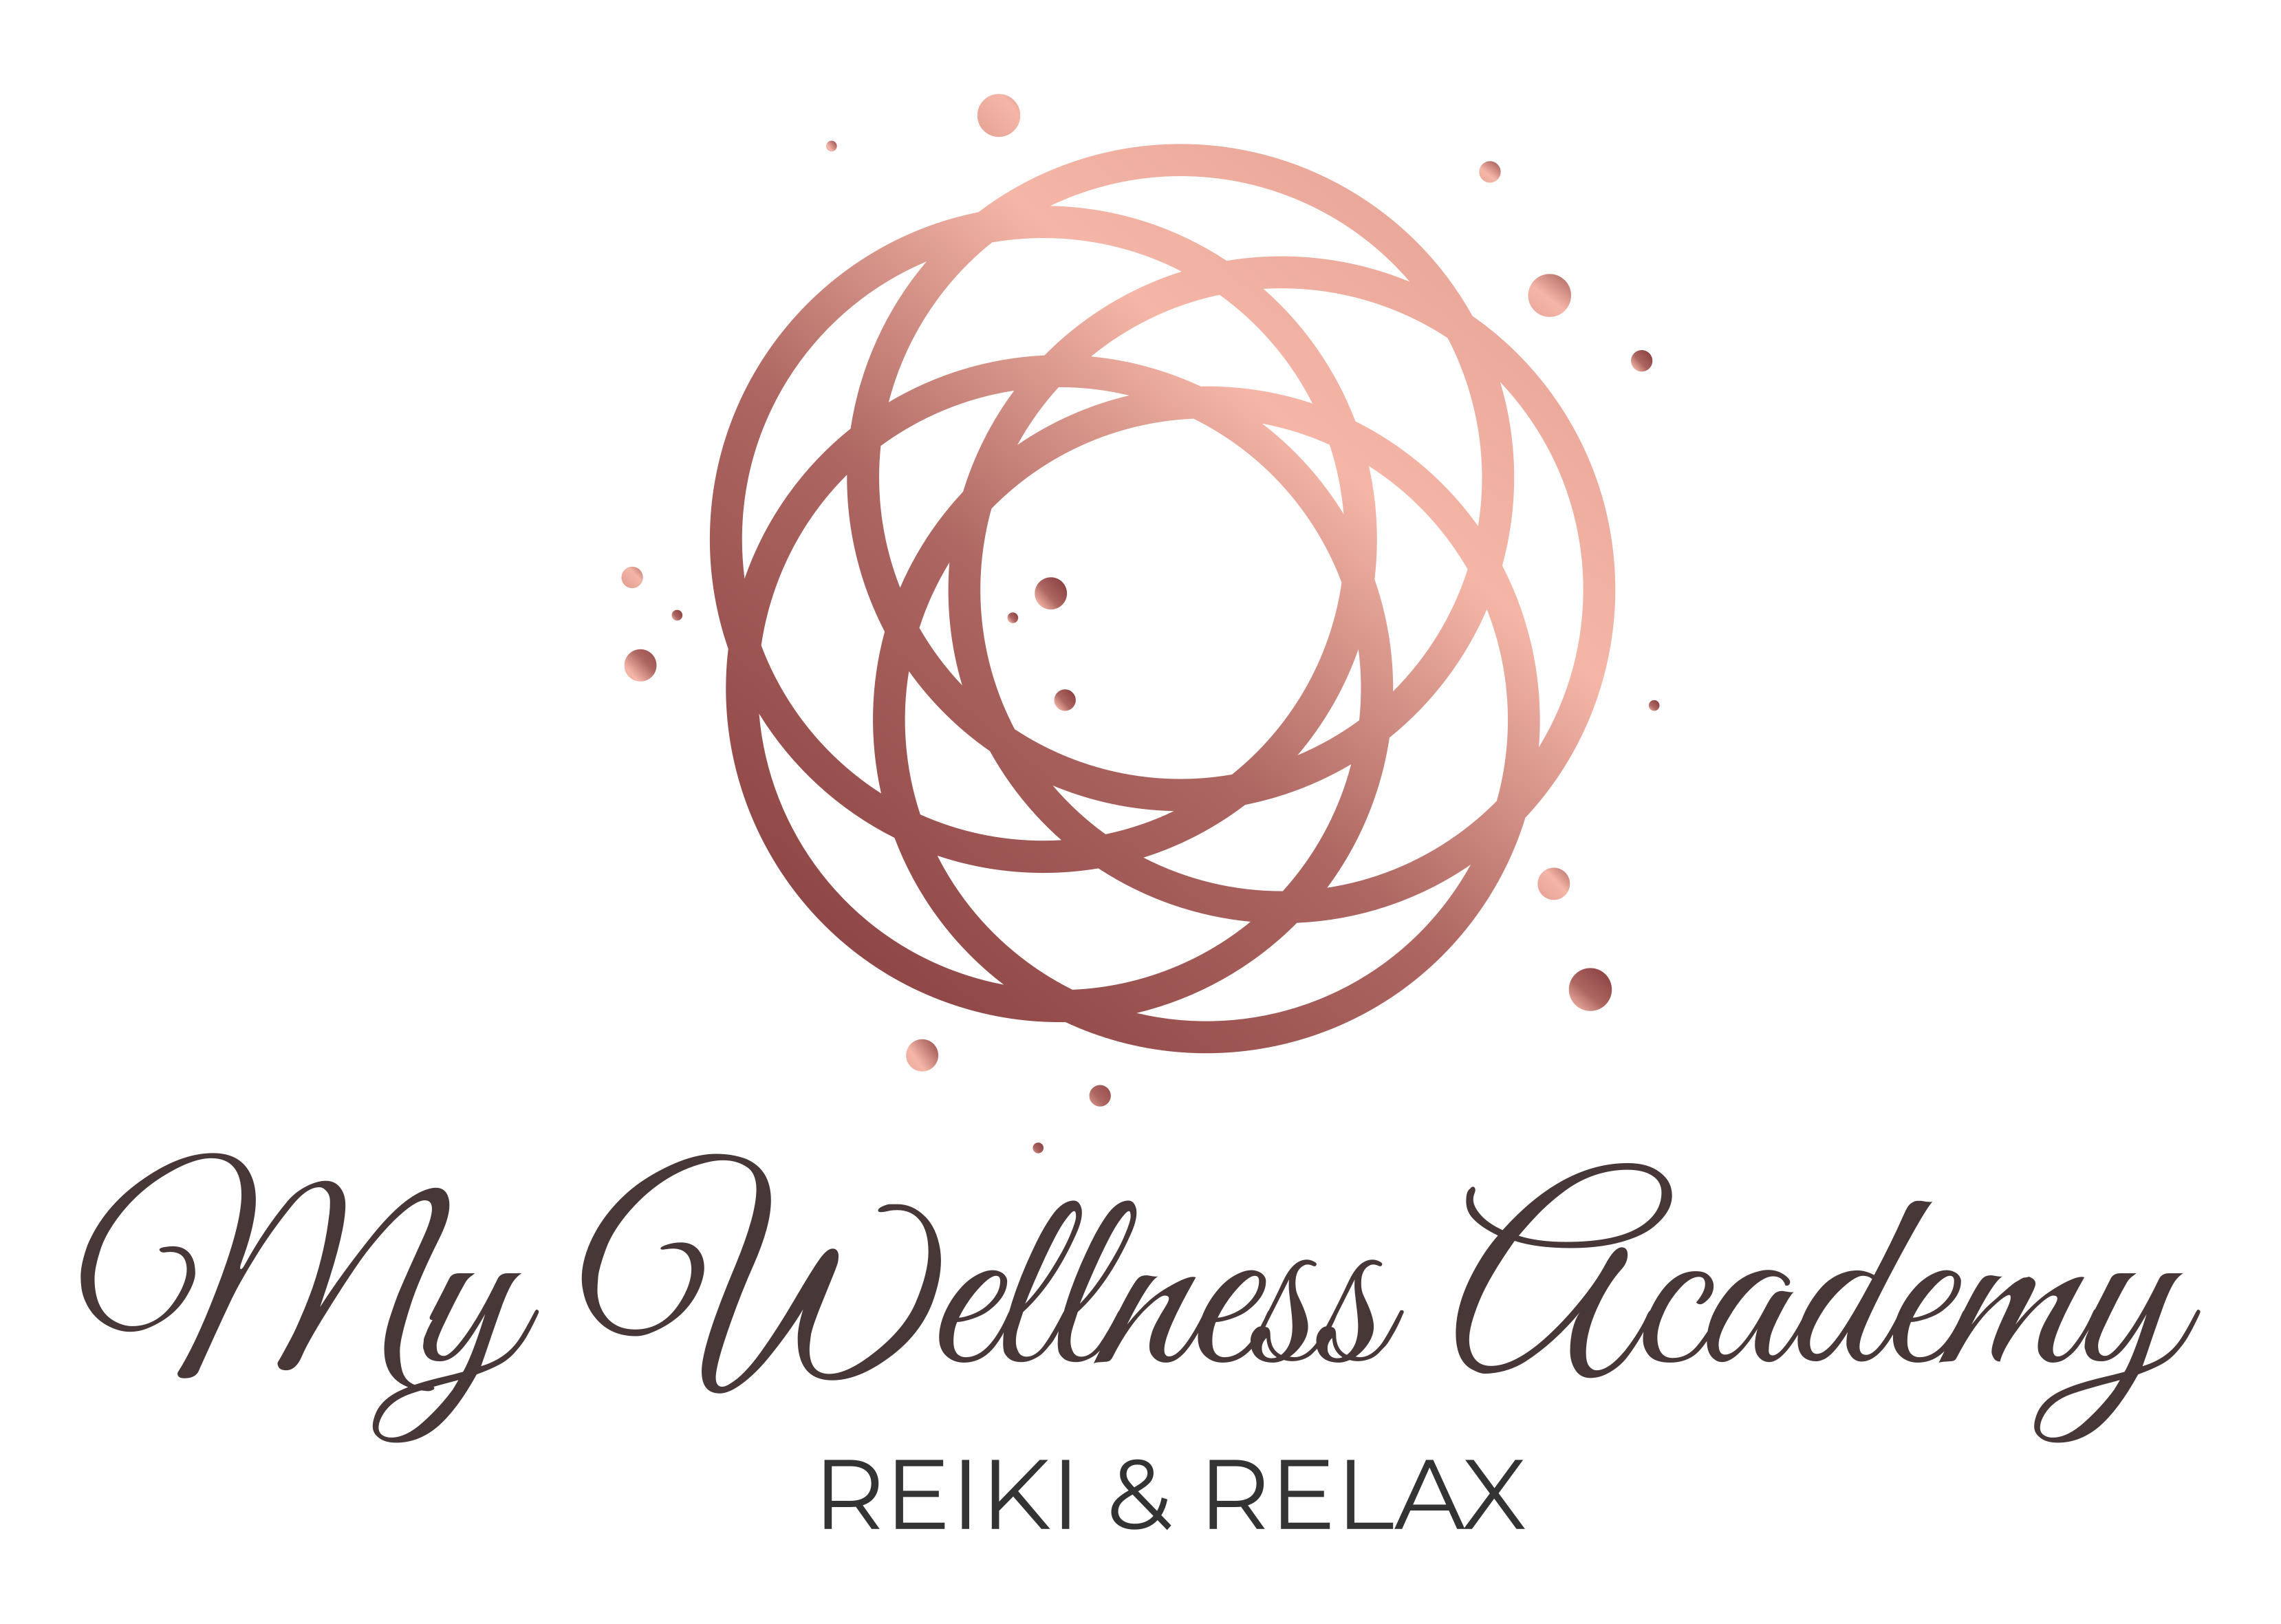 My Wellness Academy